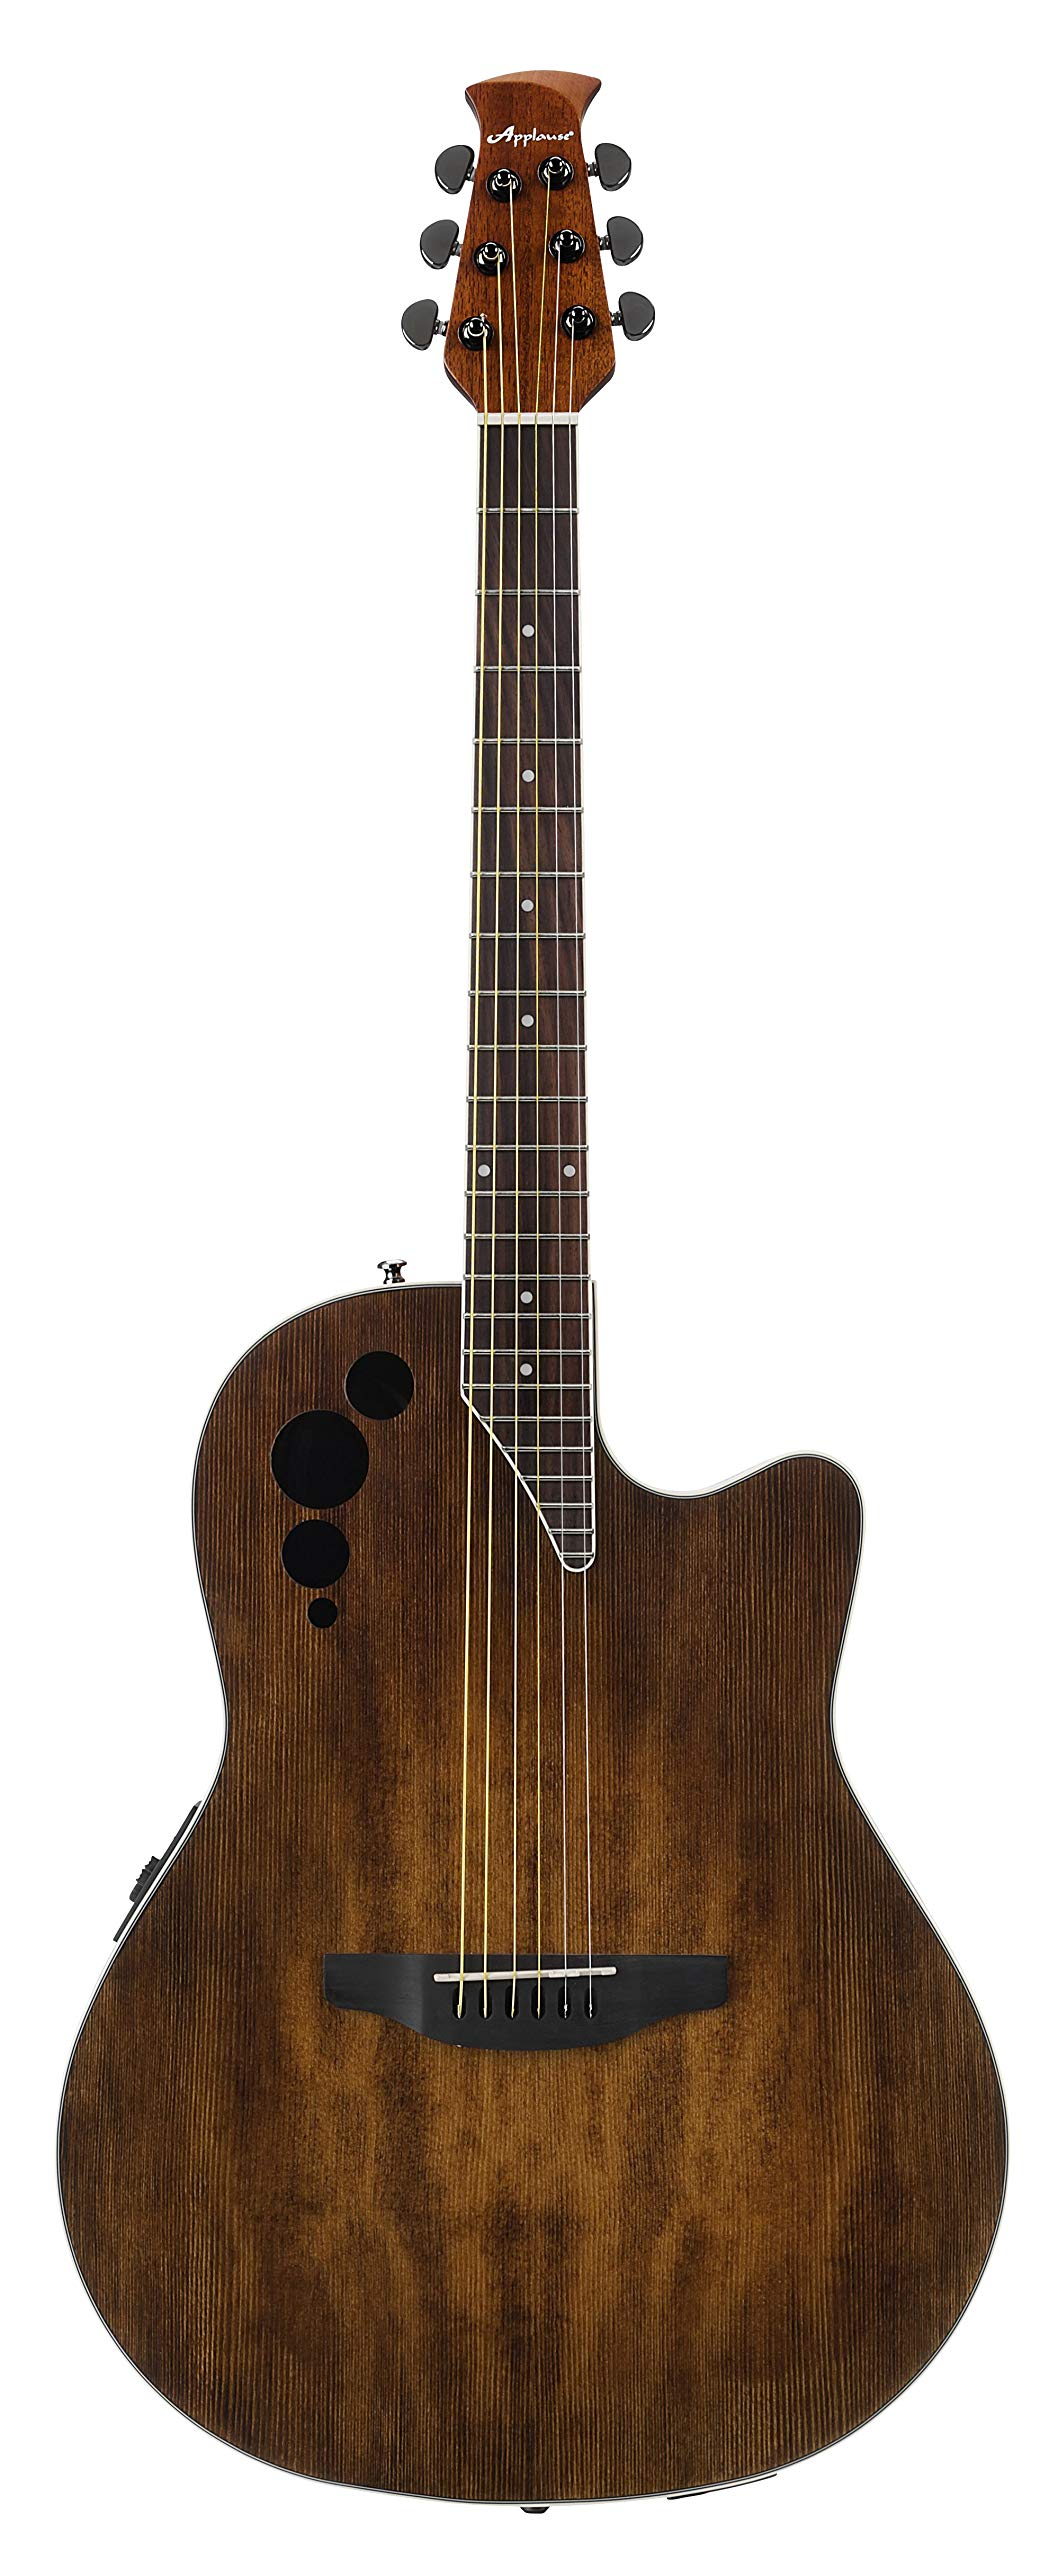 Ovation Applause 6 String Acoustic-Electric Guitar Right, Vintage Varnish Mid-Depth AE44II-VV